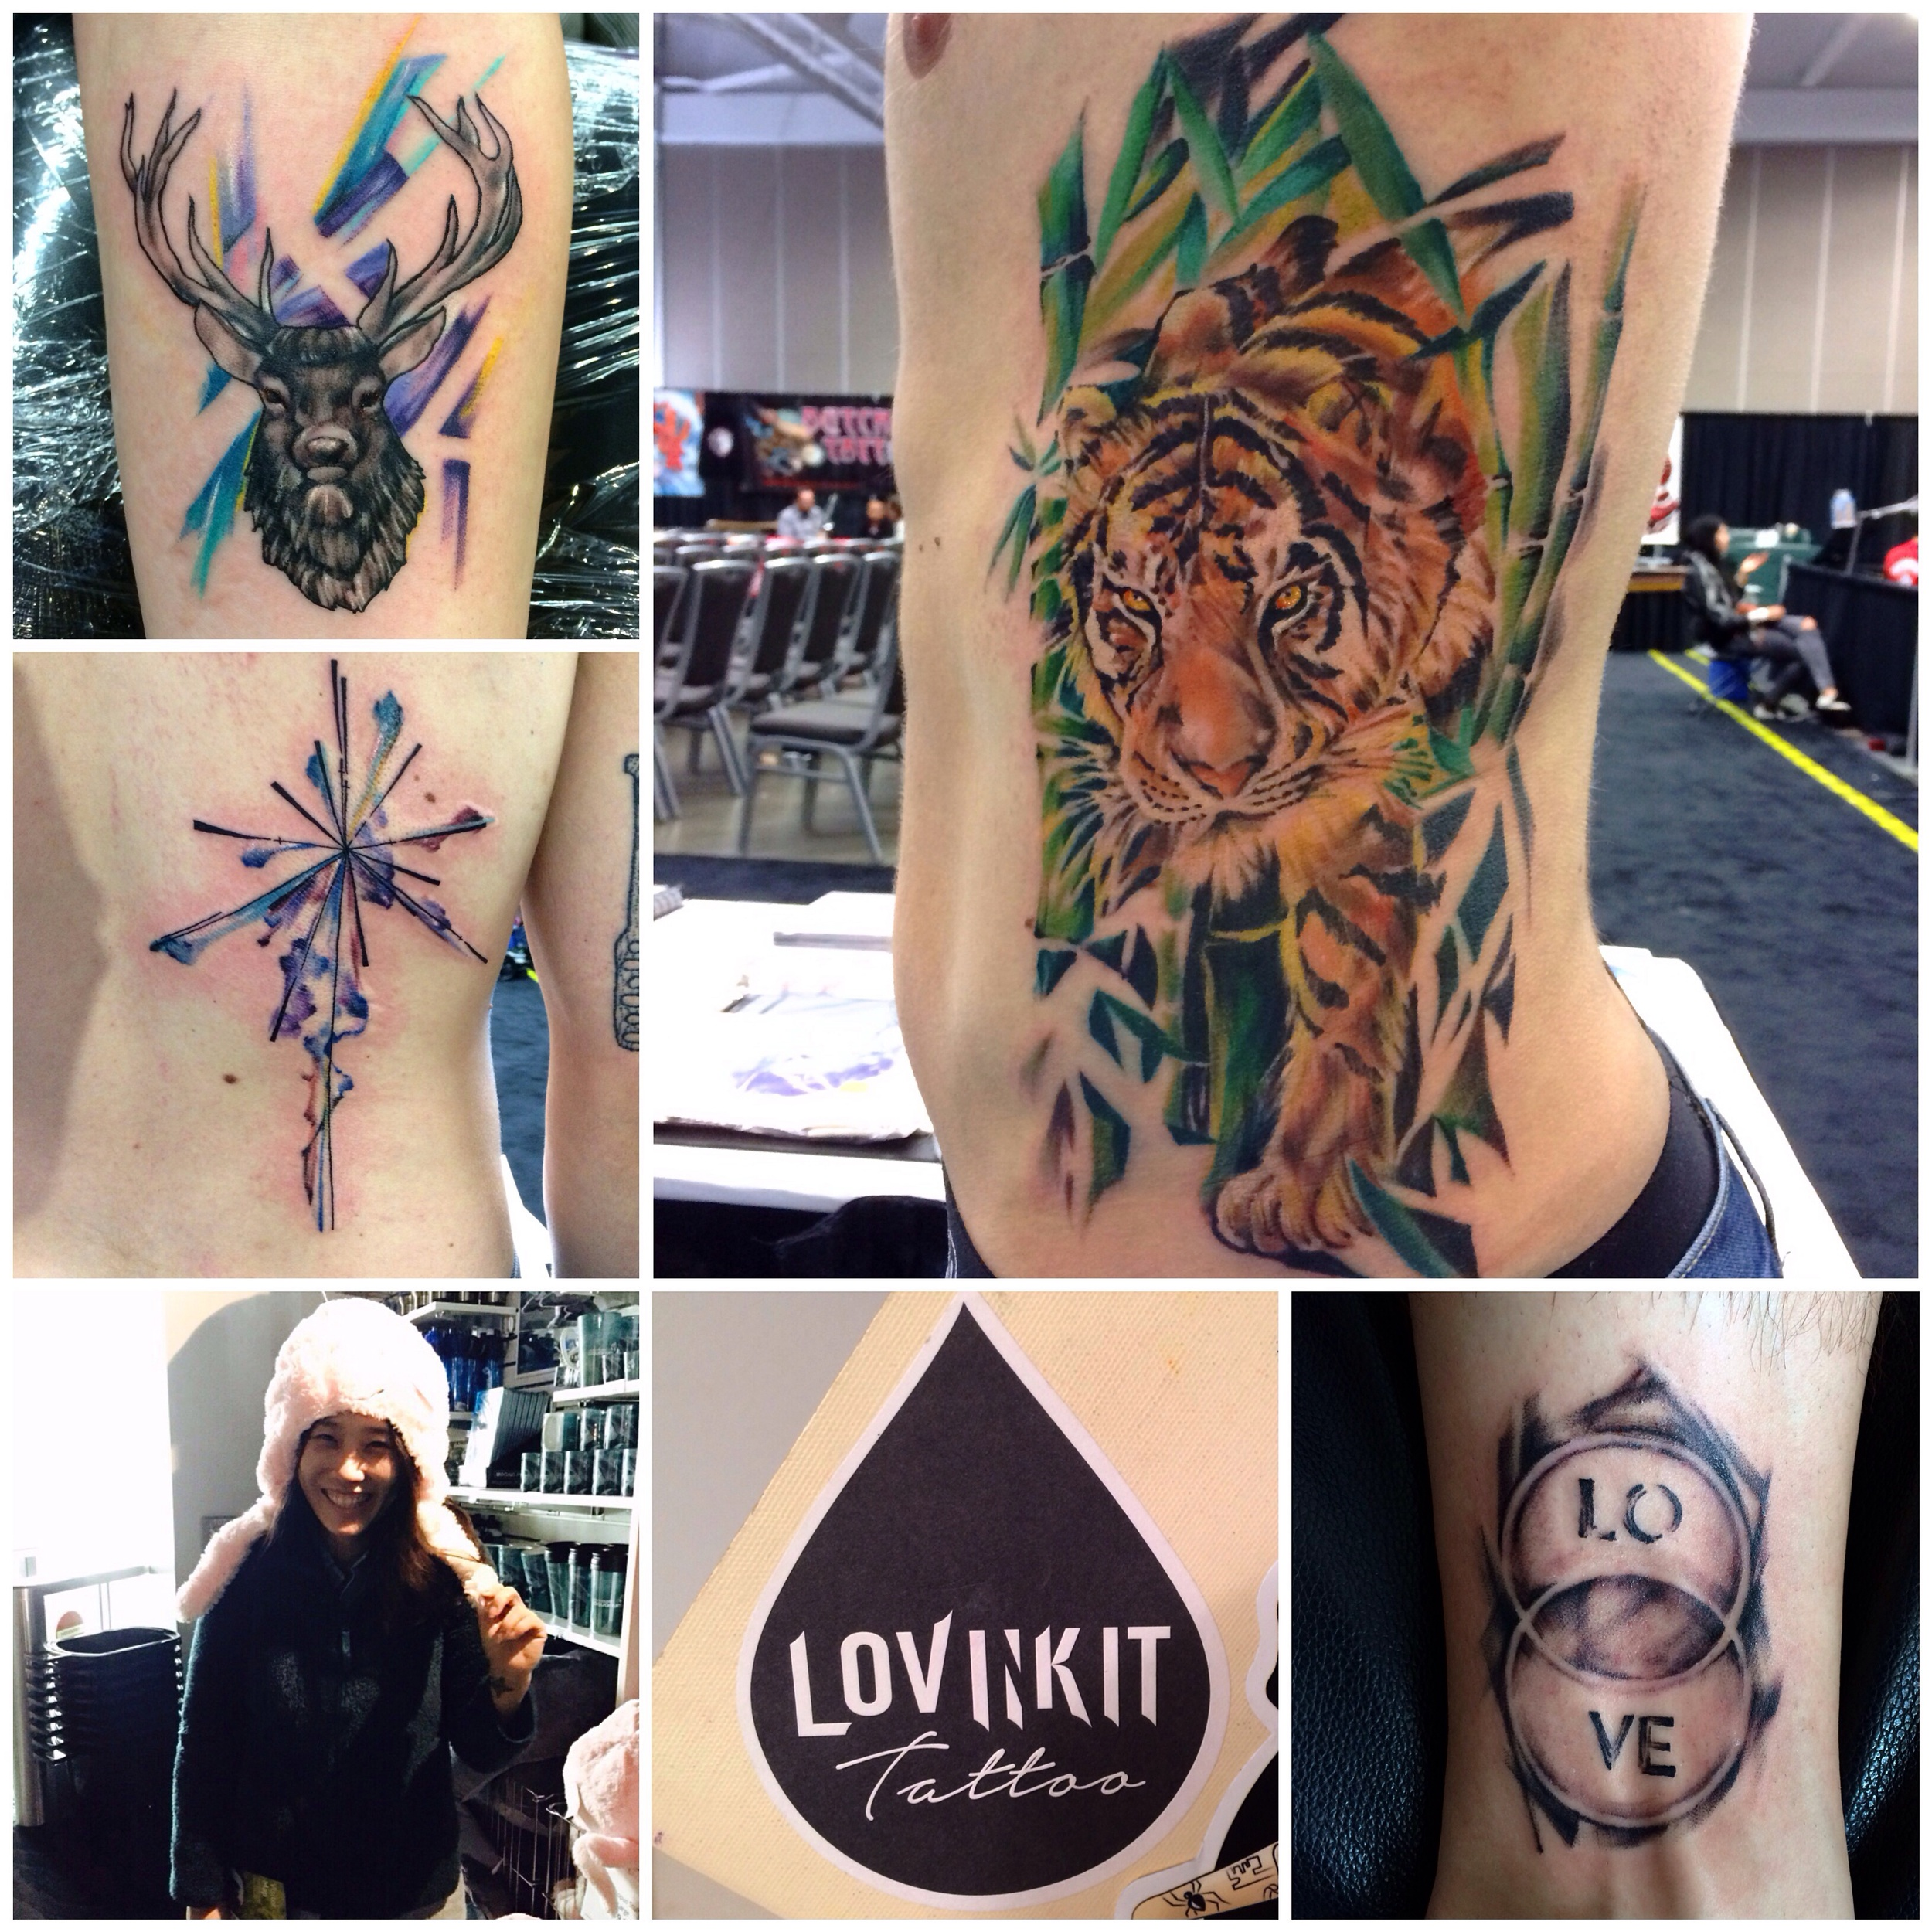 Jayers: @vancouvertattooshow was such a blast. Thank you everybody! Till next year! #vancouvertattooshow #vancouvertattoo #hongkongtattoo #lovinkit #tattoo #ladytattooer #tigertattoo #painttattoo #brushtattoo #watercolourtattoo #multimedia #oilpaintingtattoo